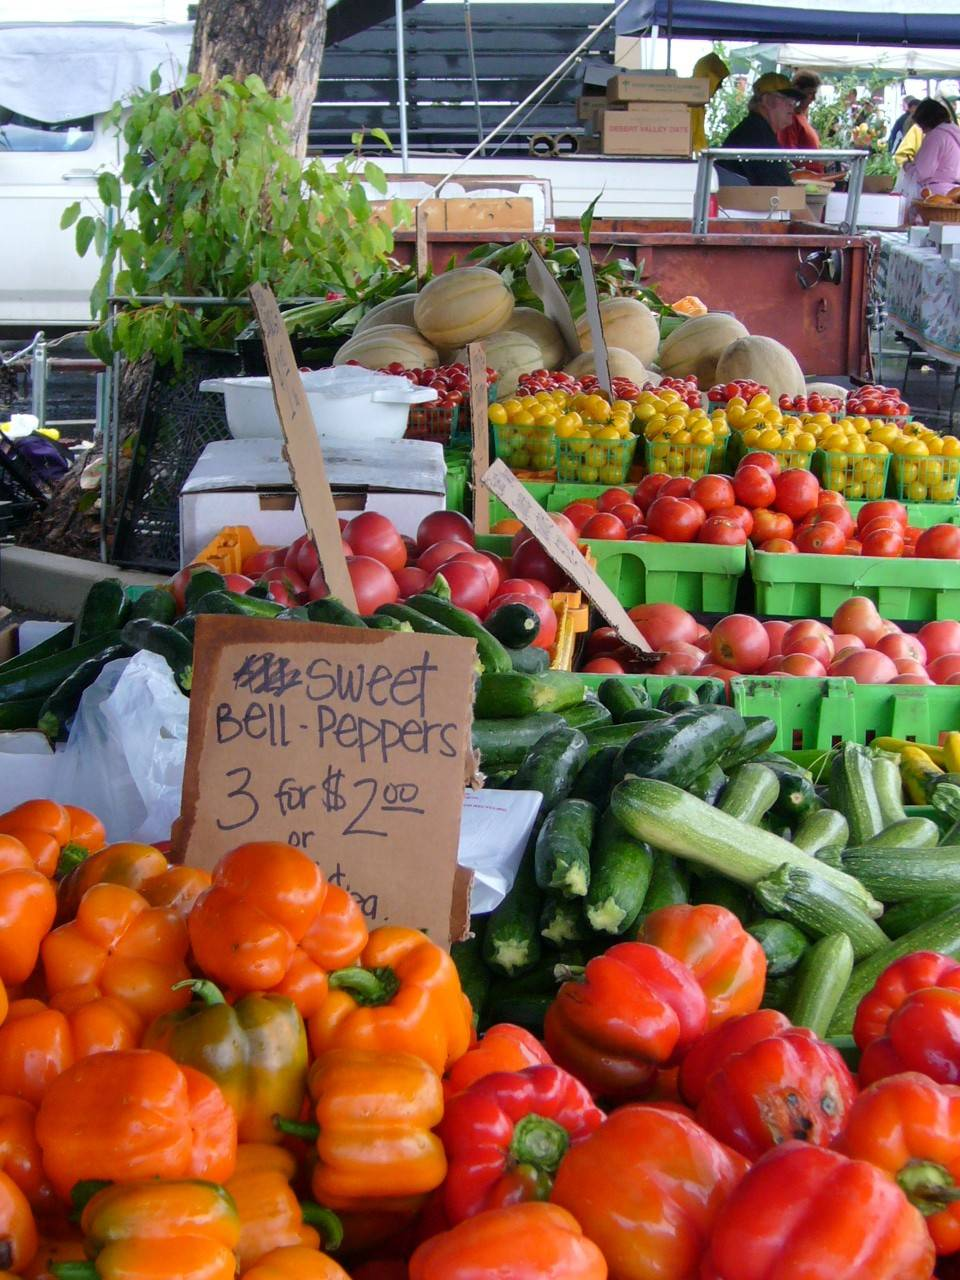 A variety of vegetables are on sale at a farmers market in Pasadena, Calif. With summery temps almost the entire year, Pasadena is home to three certified weekly farmers markets.